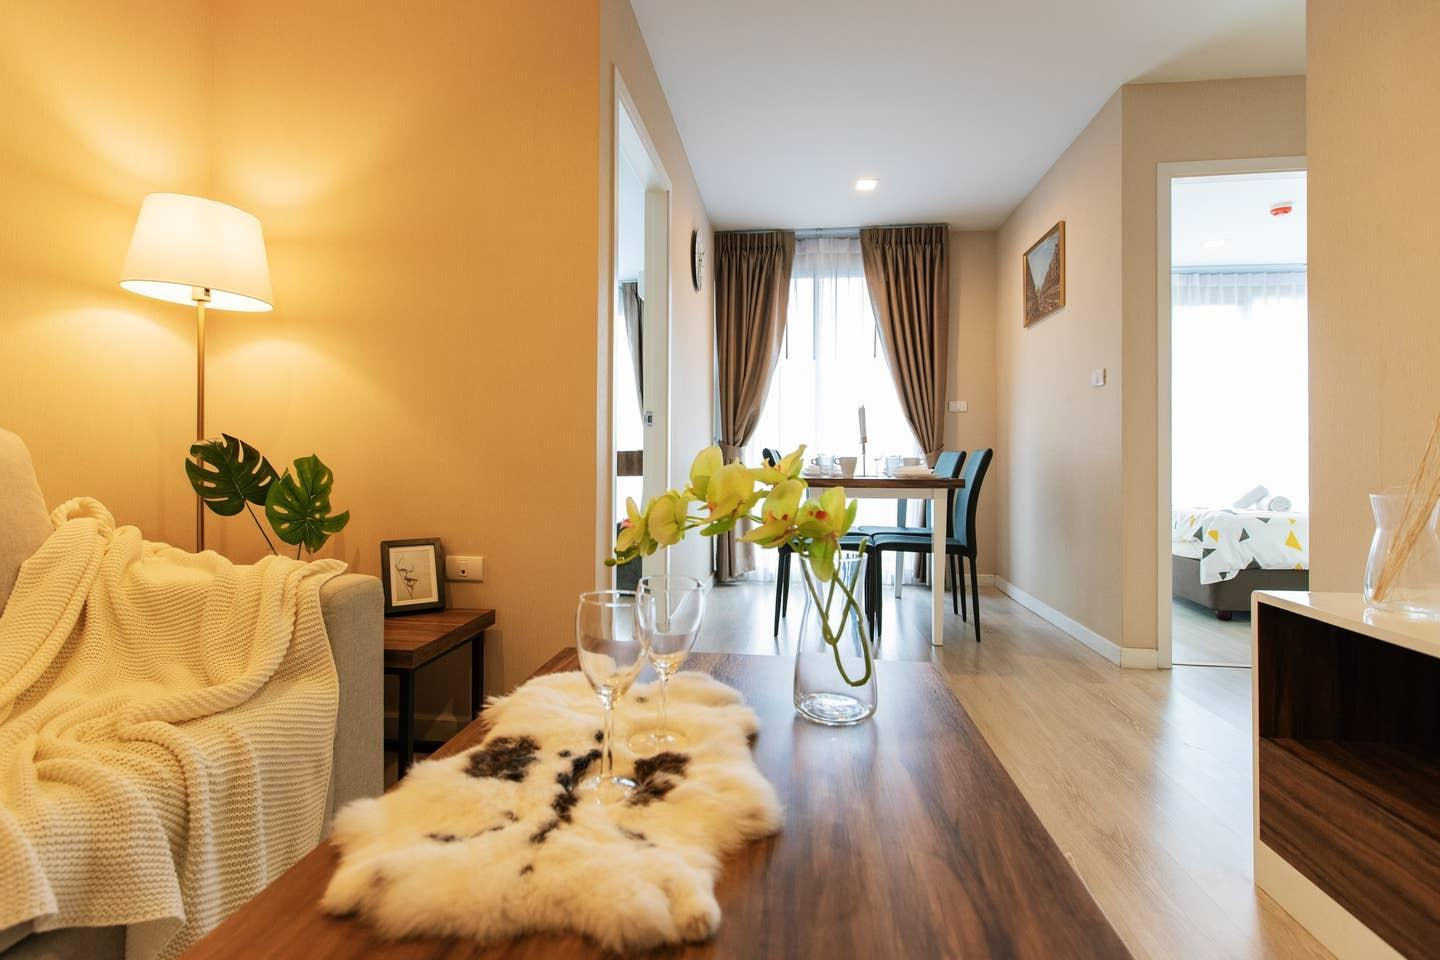 Sunset Rama exquisite large two bedroom bkb221